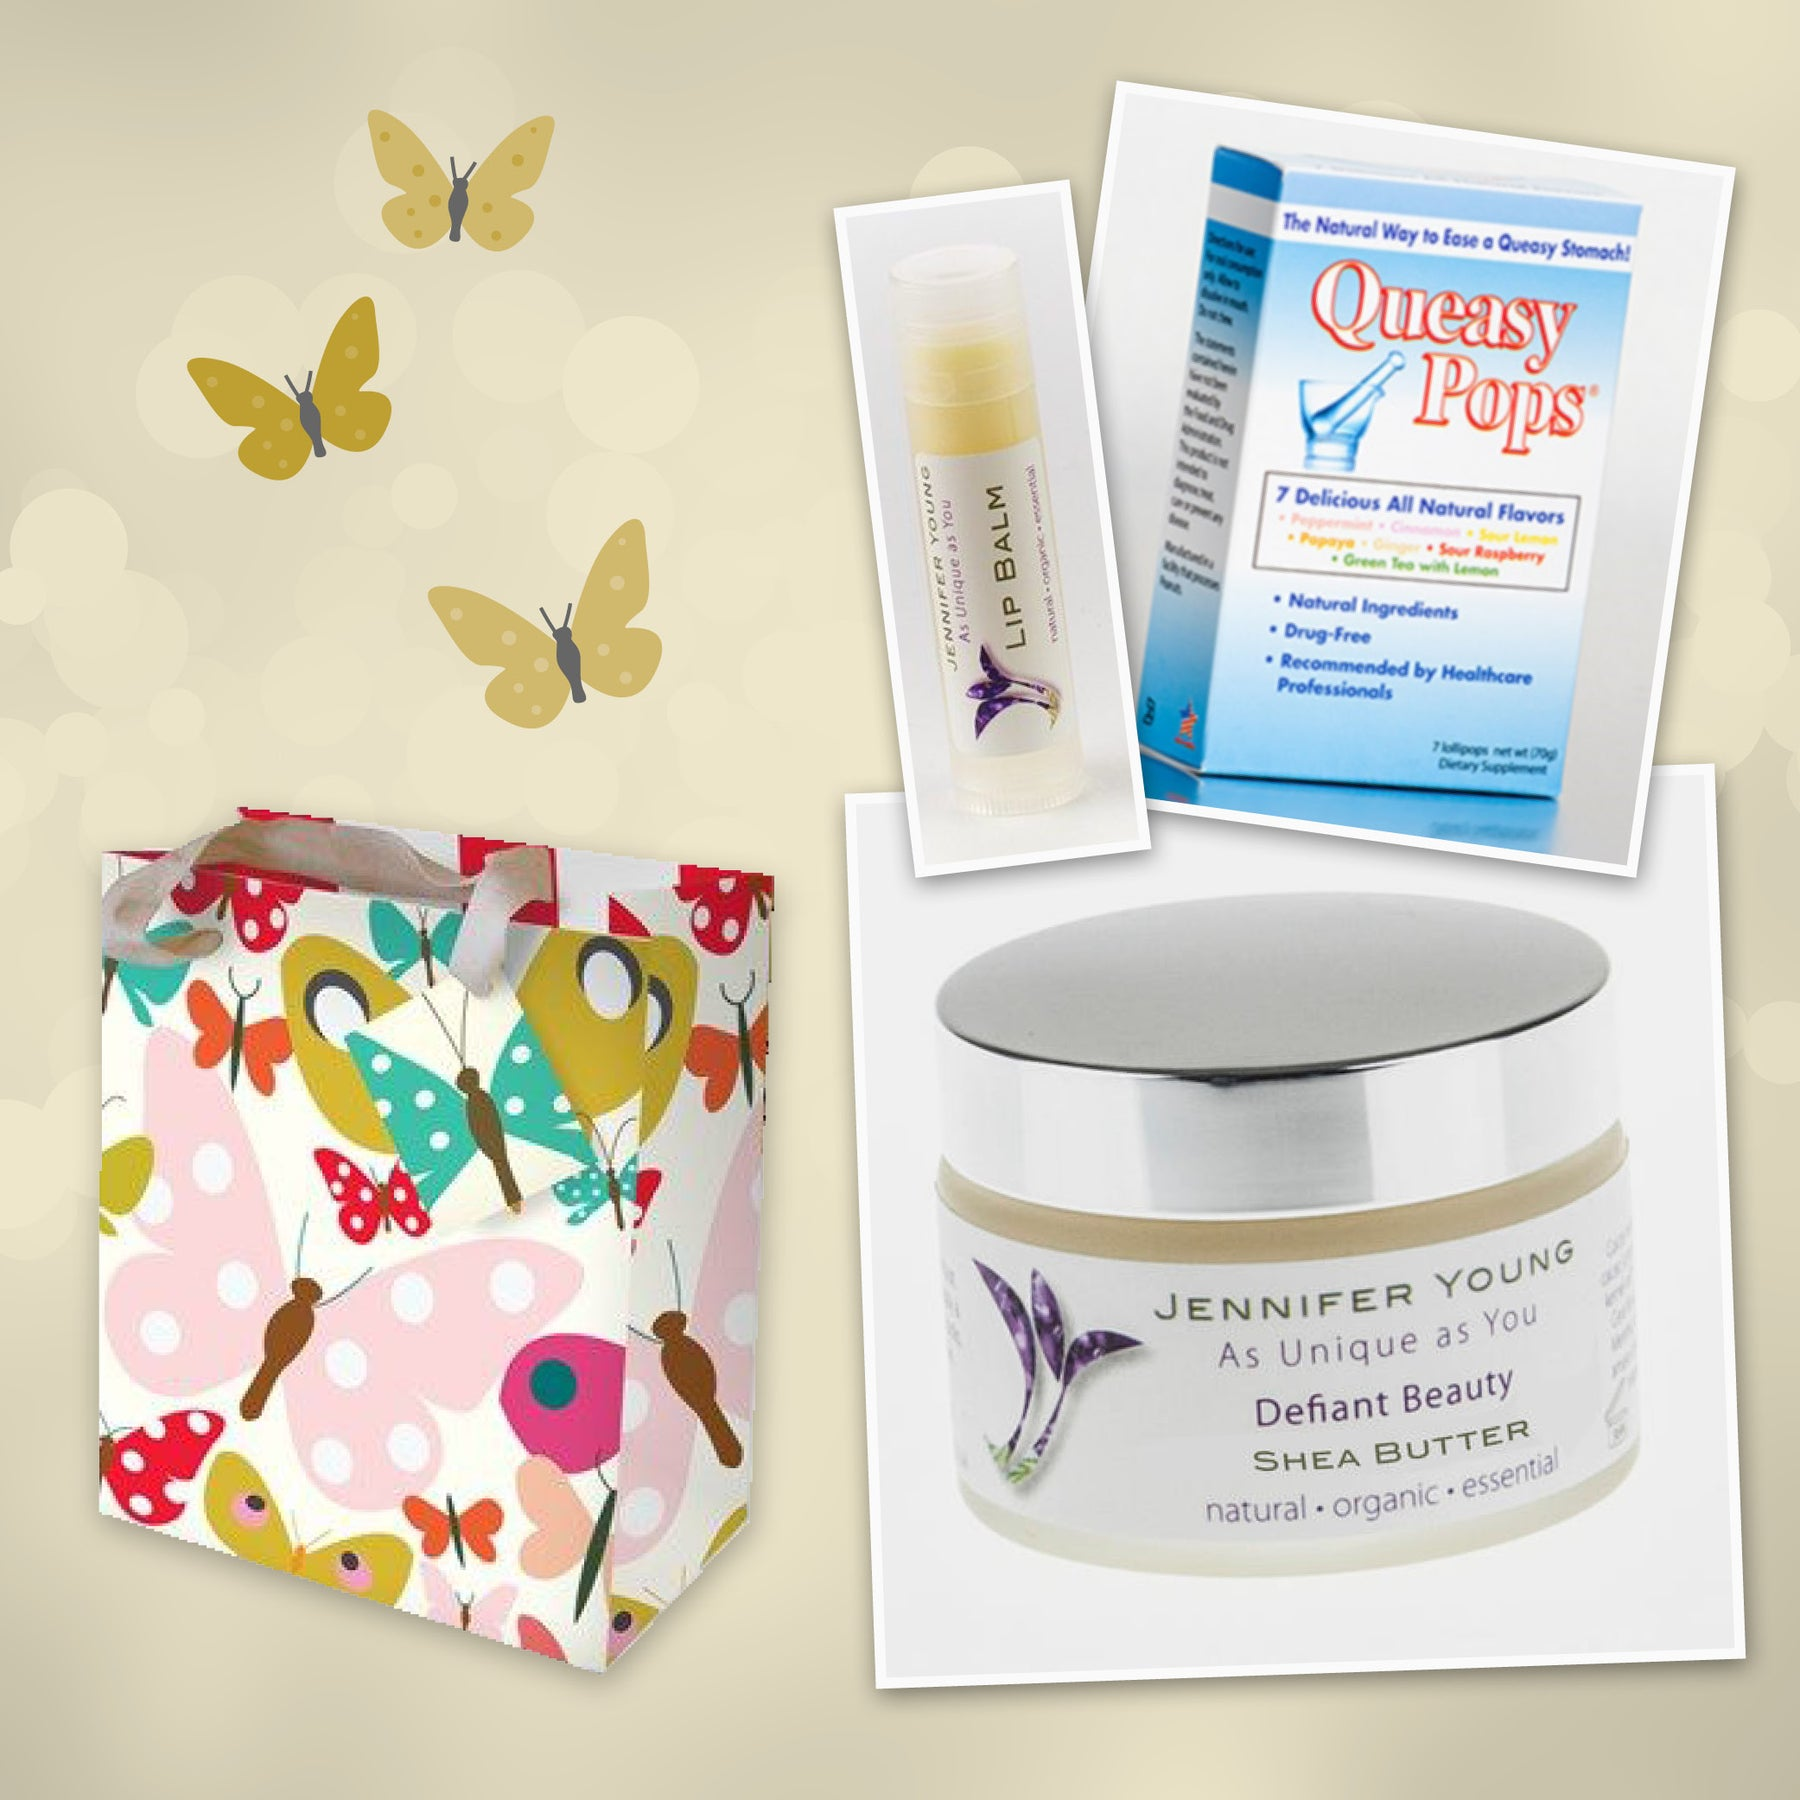 Top Five Gifts For A Chemotherapy Care Package